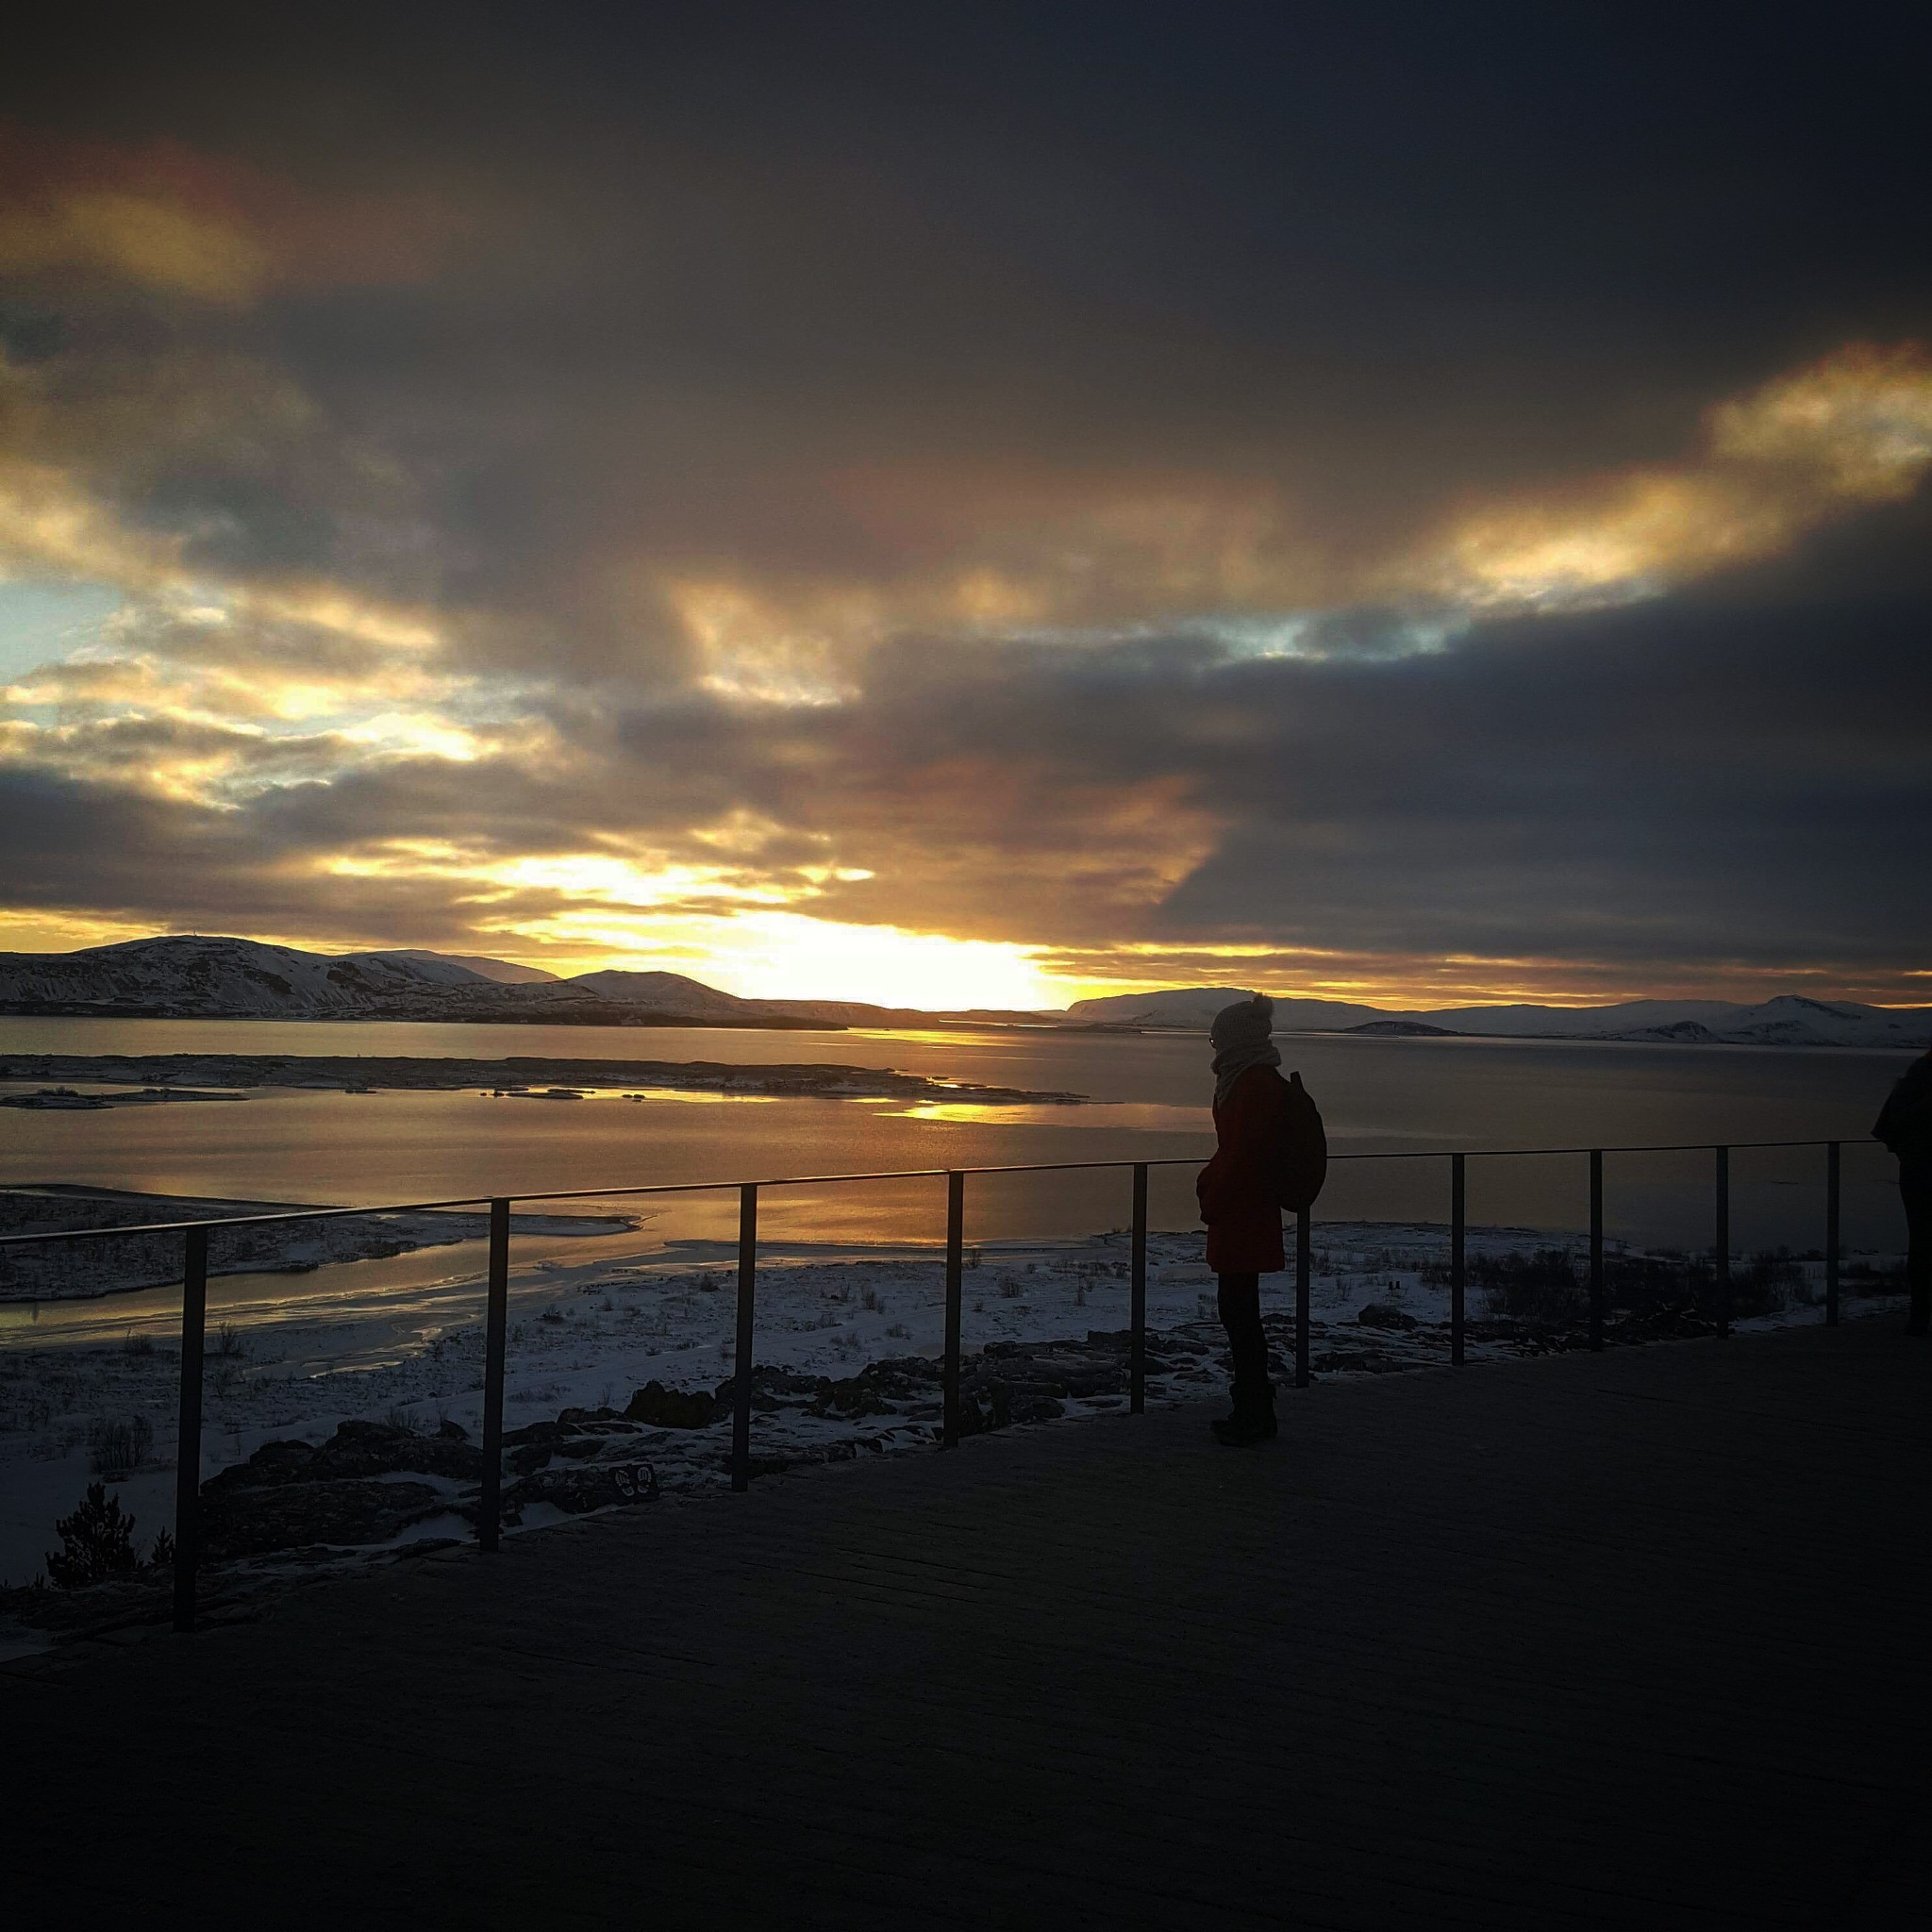 Silhouette in Iceland  by Lsb23